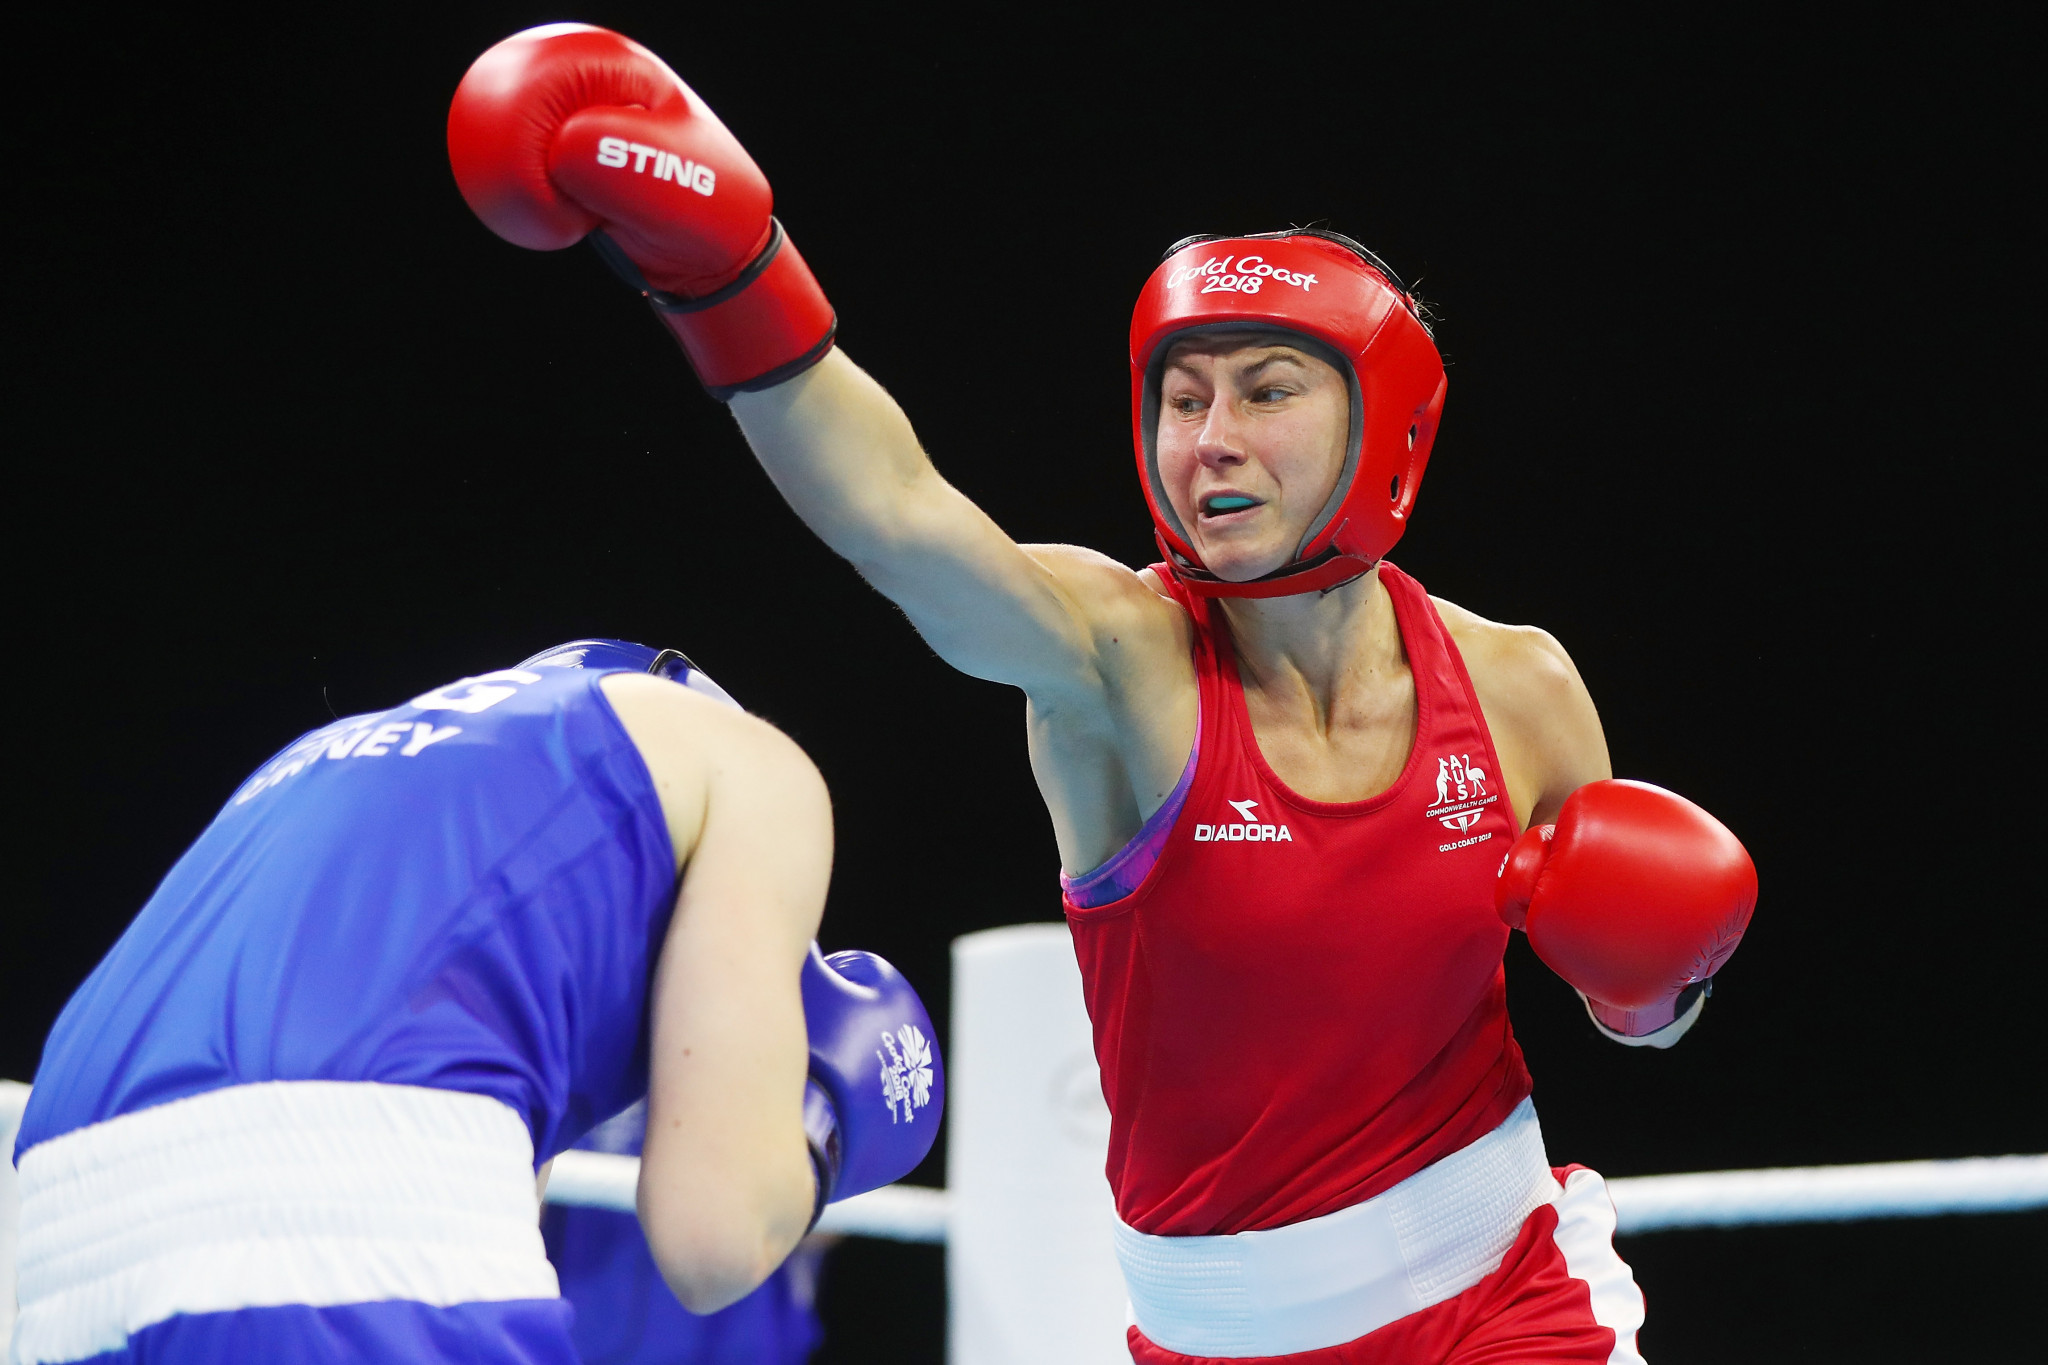 Australia's Commonwealth lightweight champion Anja Stridsman won her first bout of the World Championships ©Getty Images